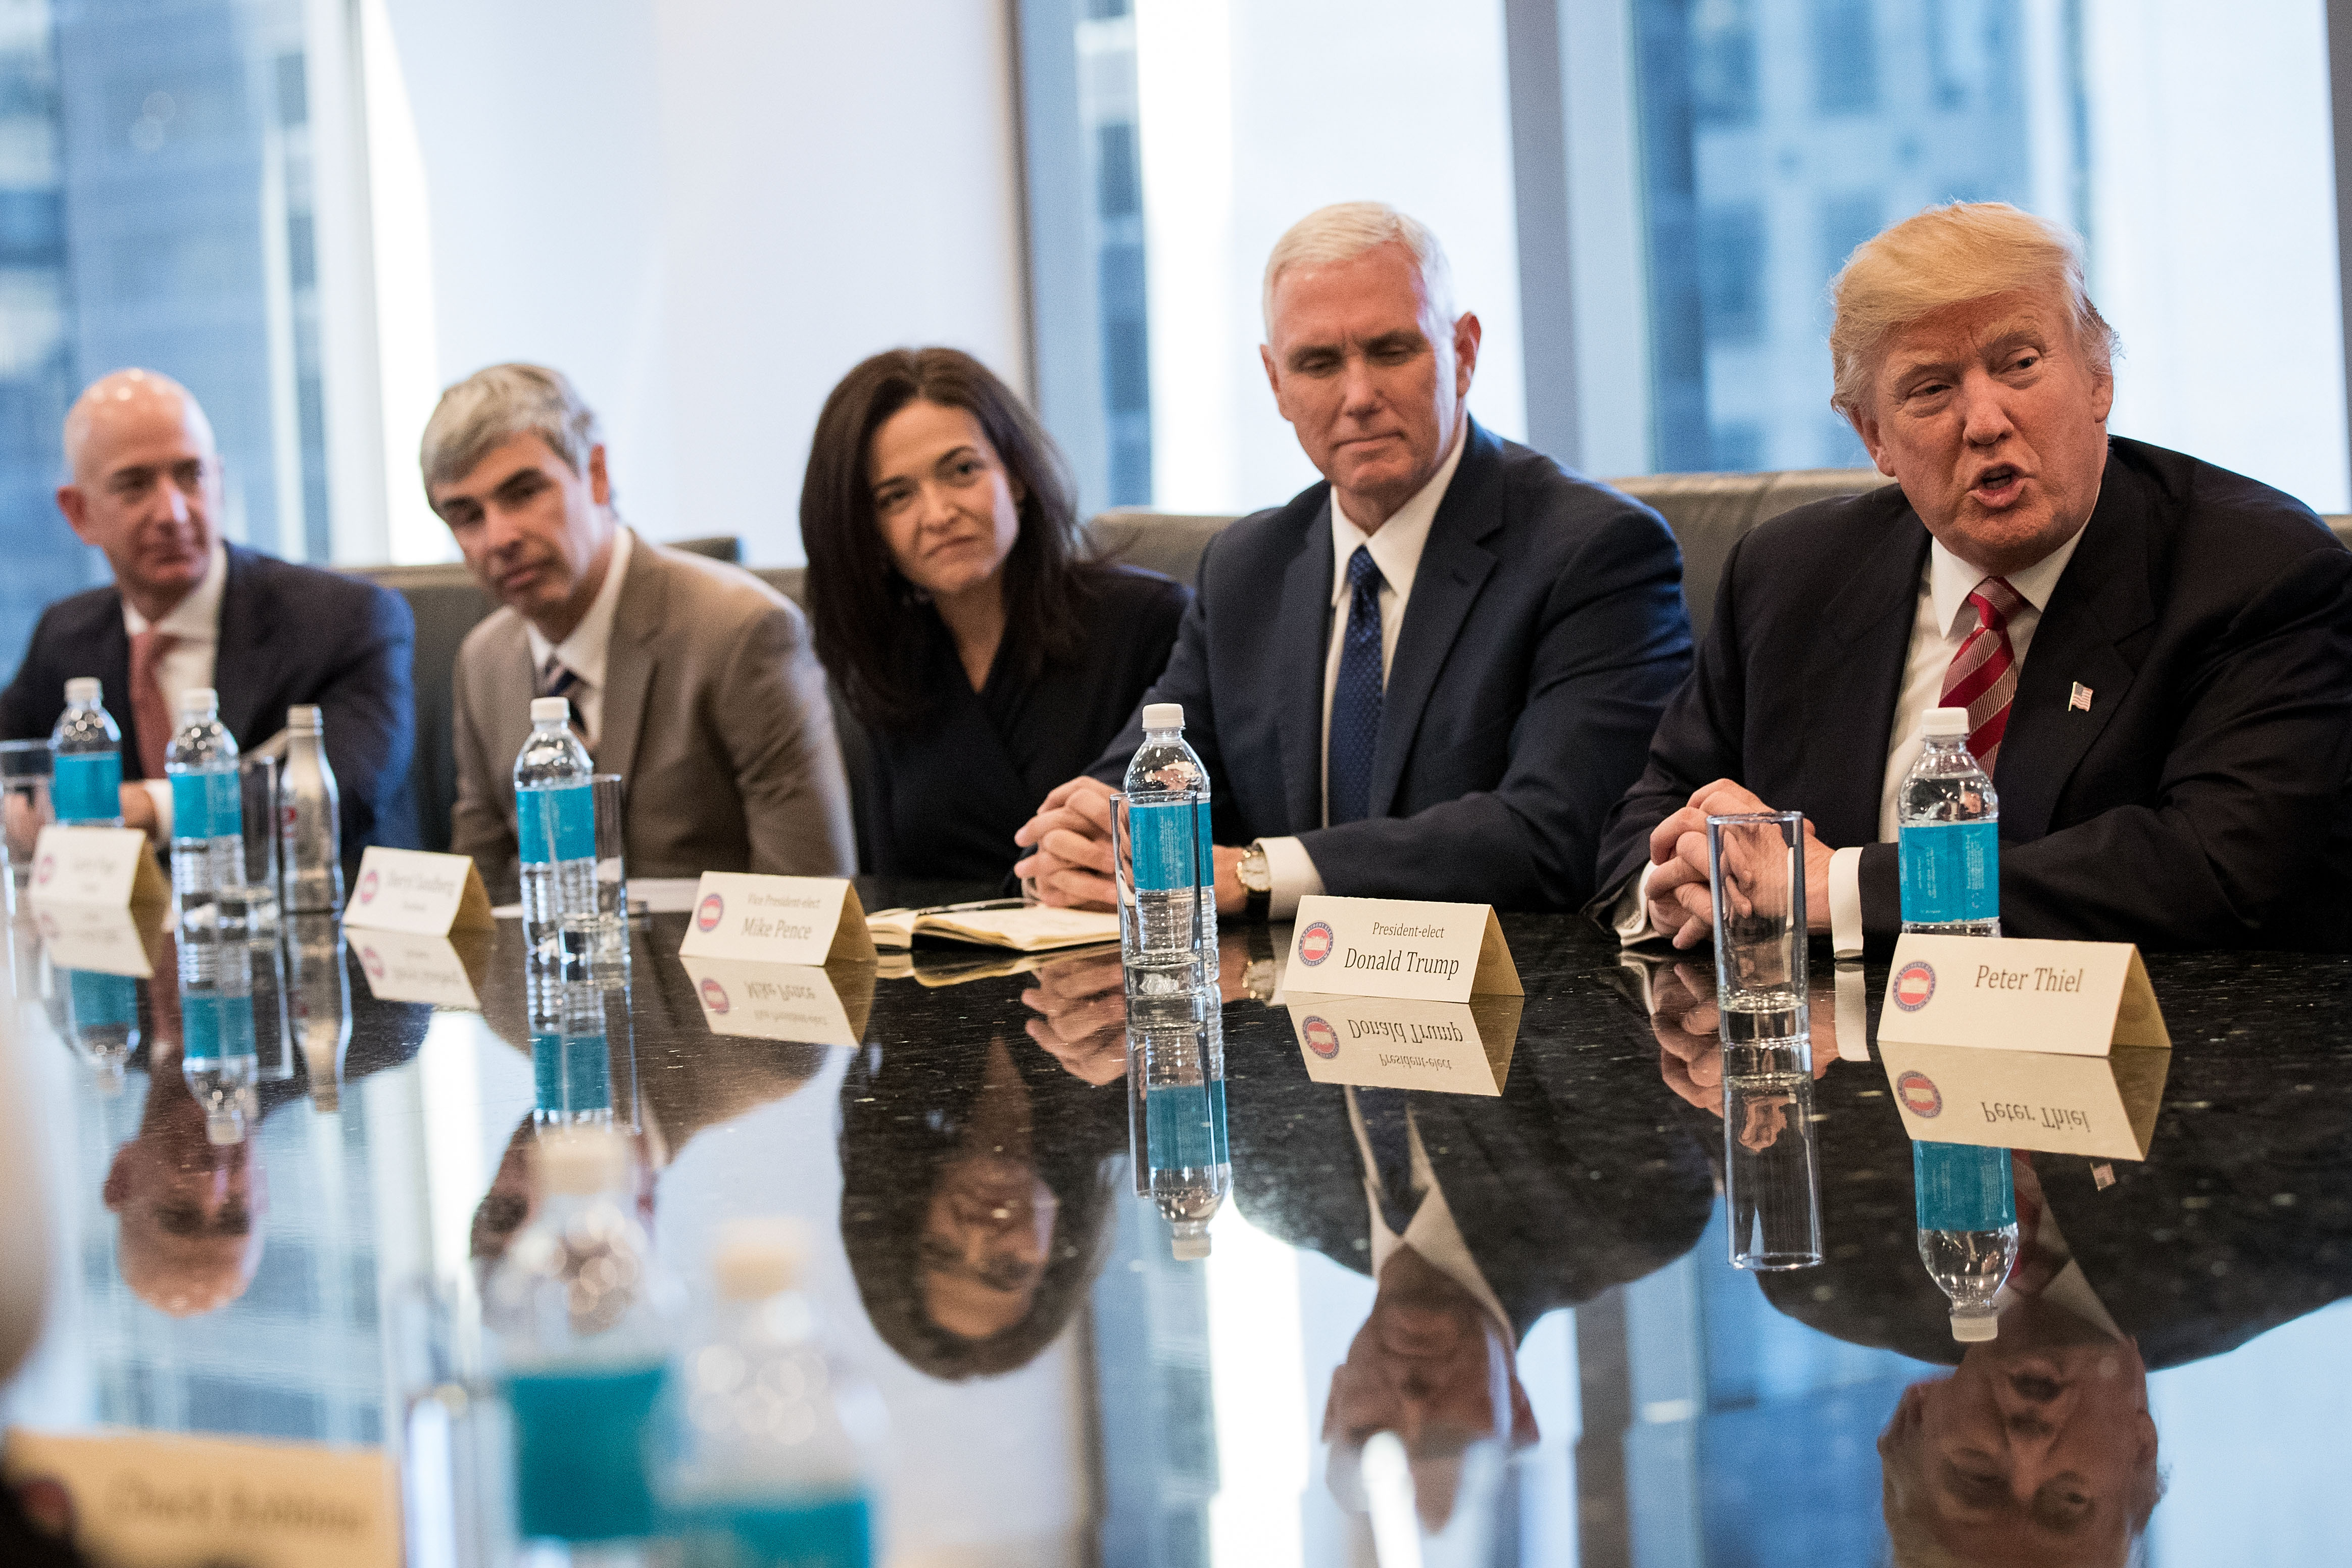 Amazon CEO Jeff Bezos, Alphabet CEO Larry Page, Facebook COO Sheryl Sandberg, VP Mike Pence and President Donald Trump sit at a conference table